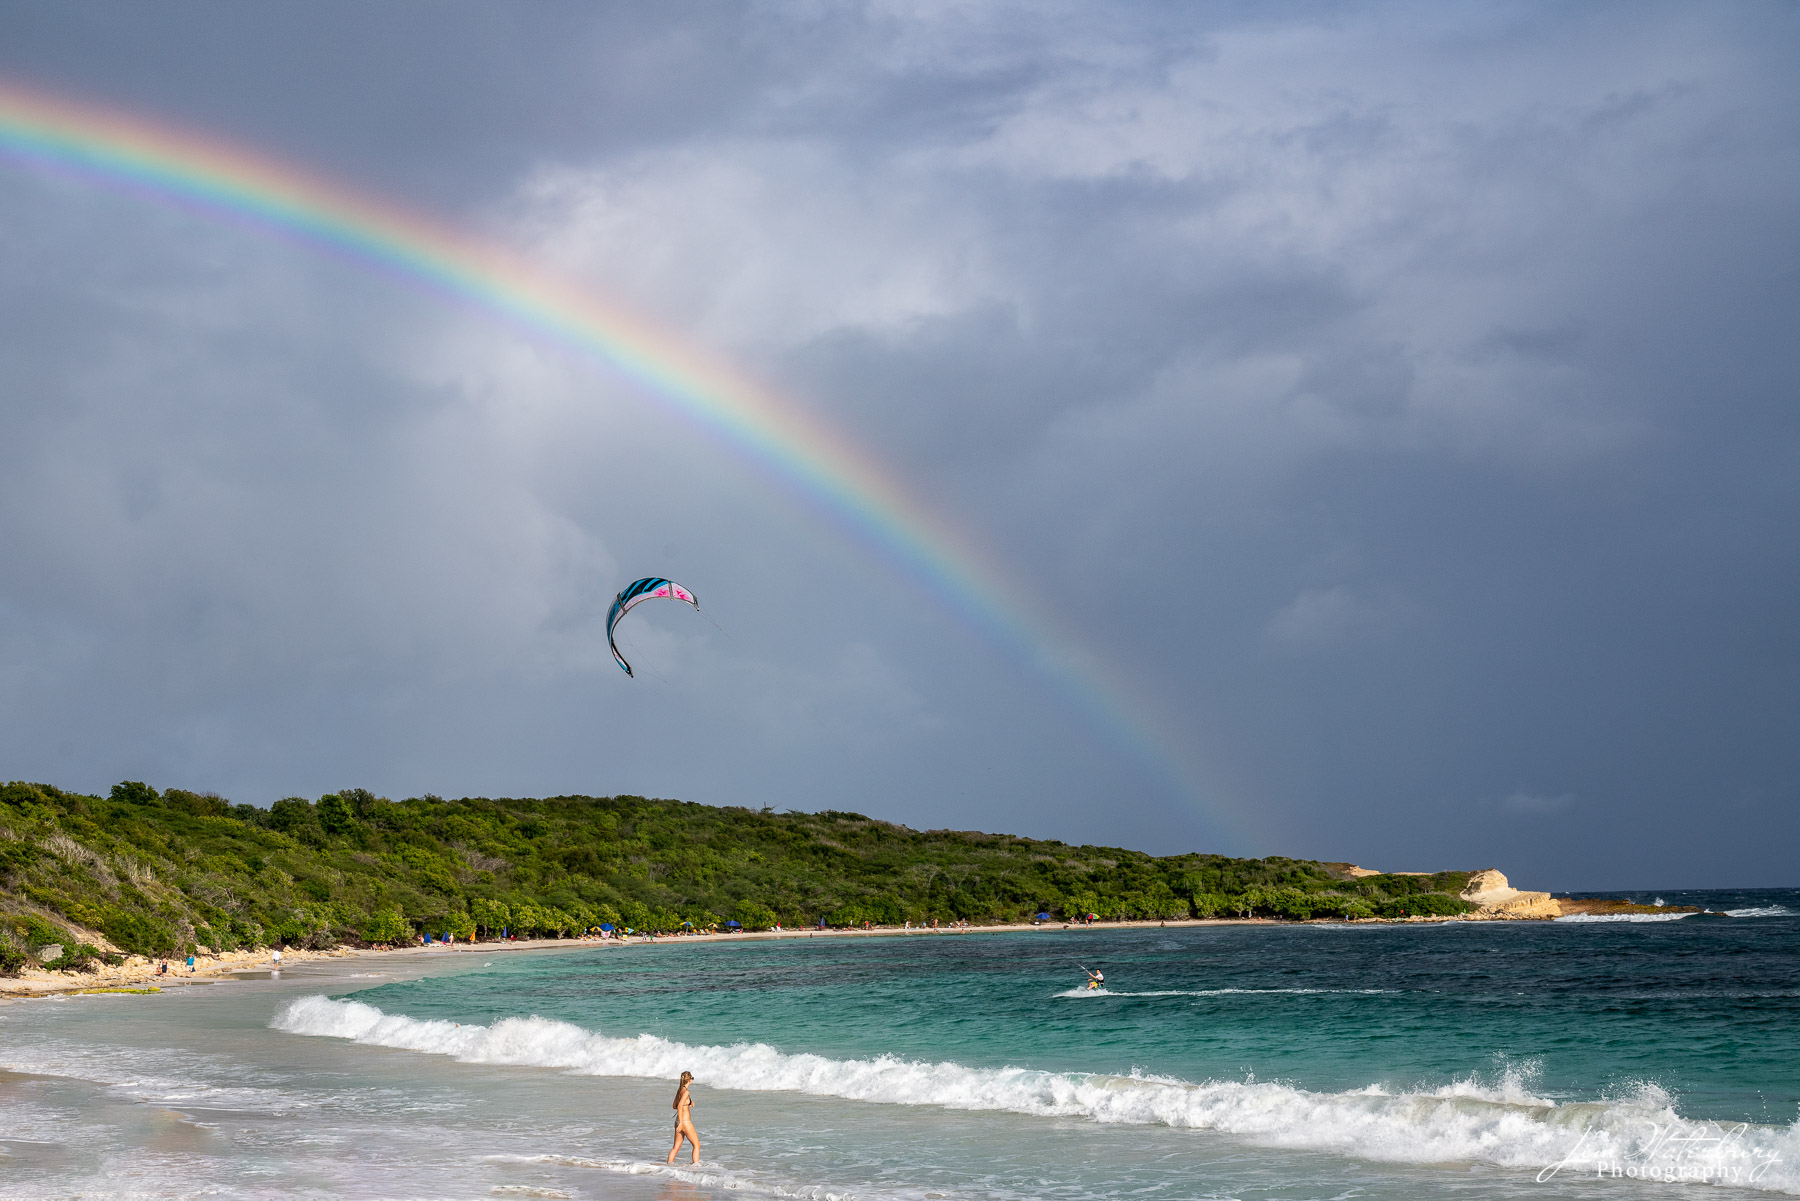 A late afternoon scene at Half Moon Bay in Antigua shows a rainbow against dark rain clouds, a woman about to enter the ocean...